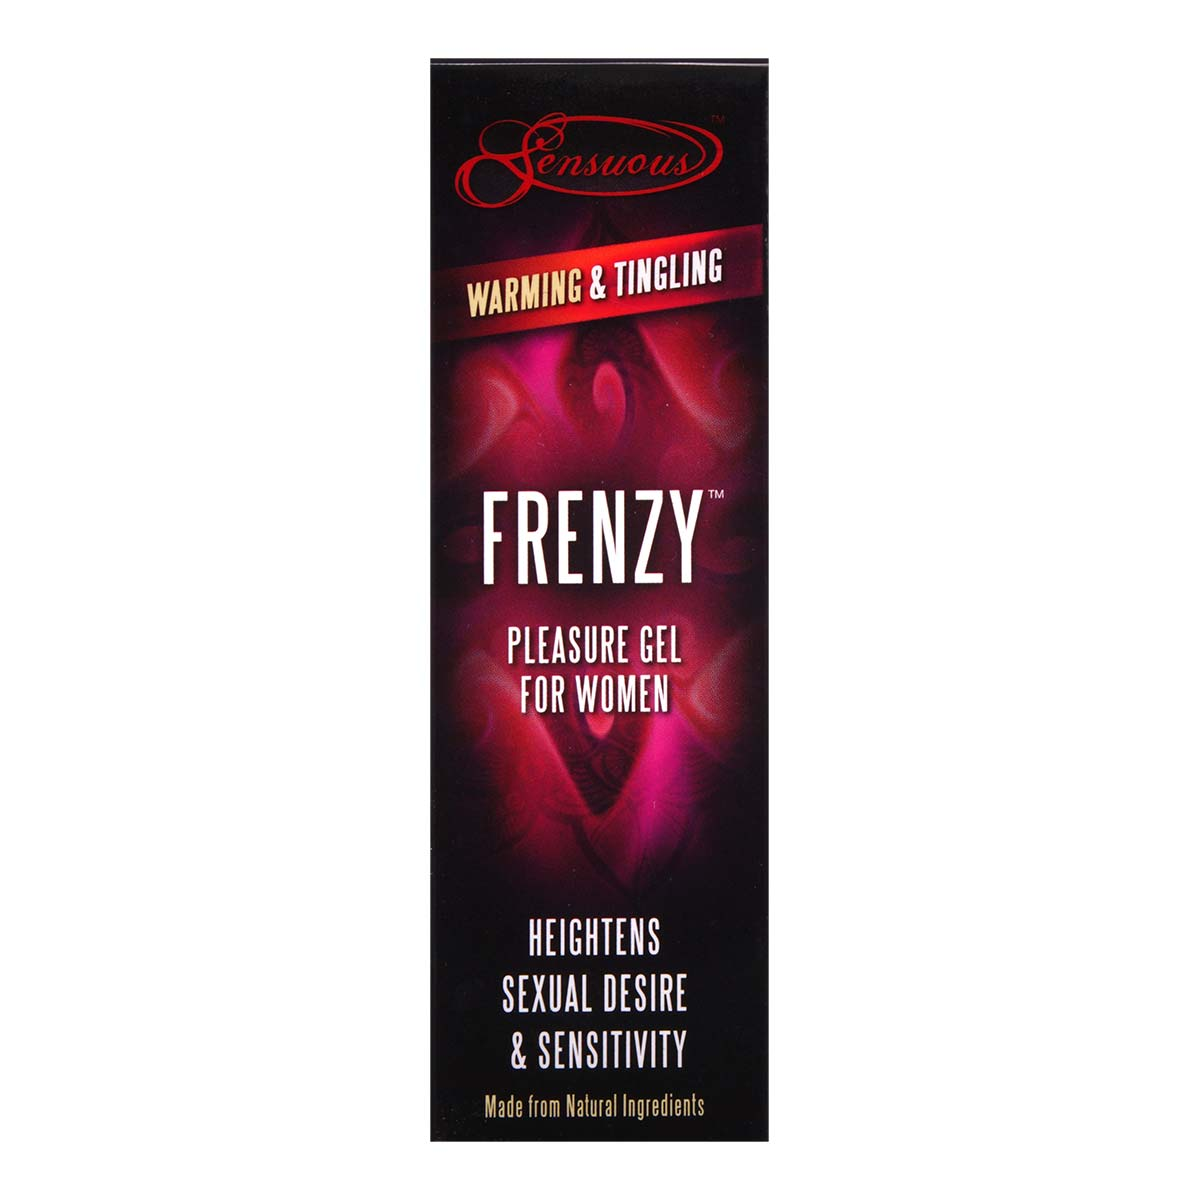 Sensuous Frenzy pleasure gel for women 7ml